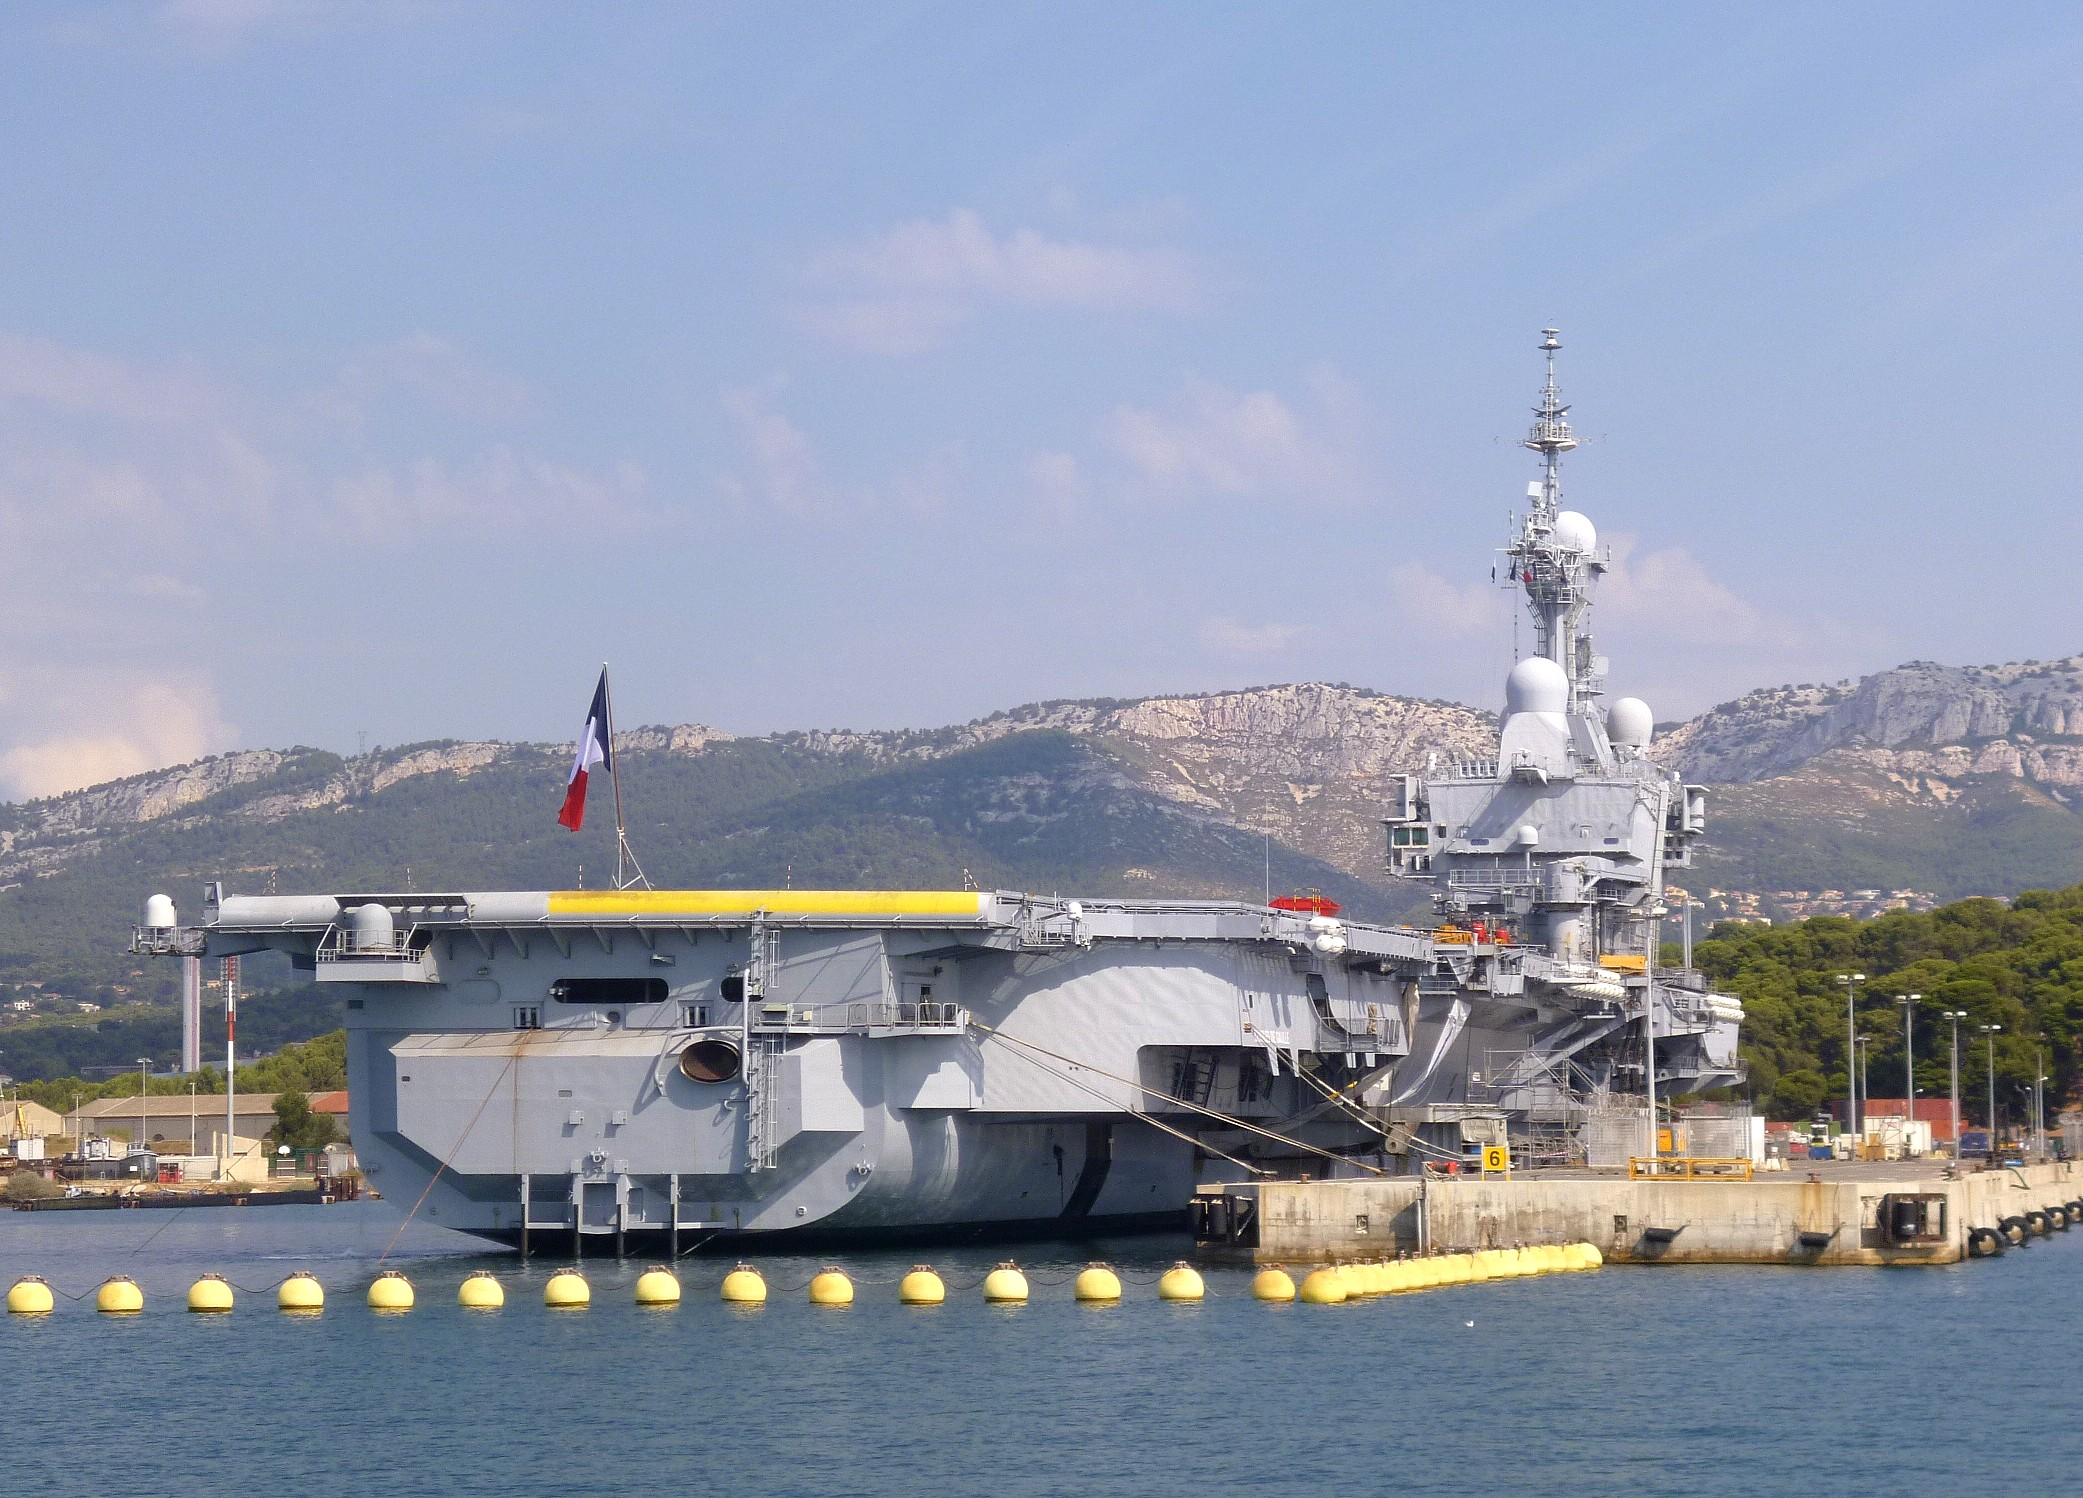 Les news en images du port de TOULON - Page 37 9562231225_8fecf95209_o